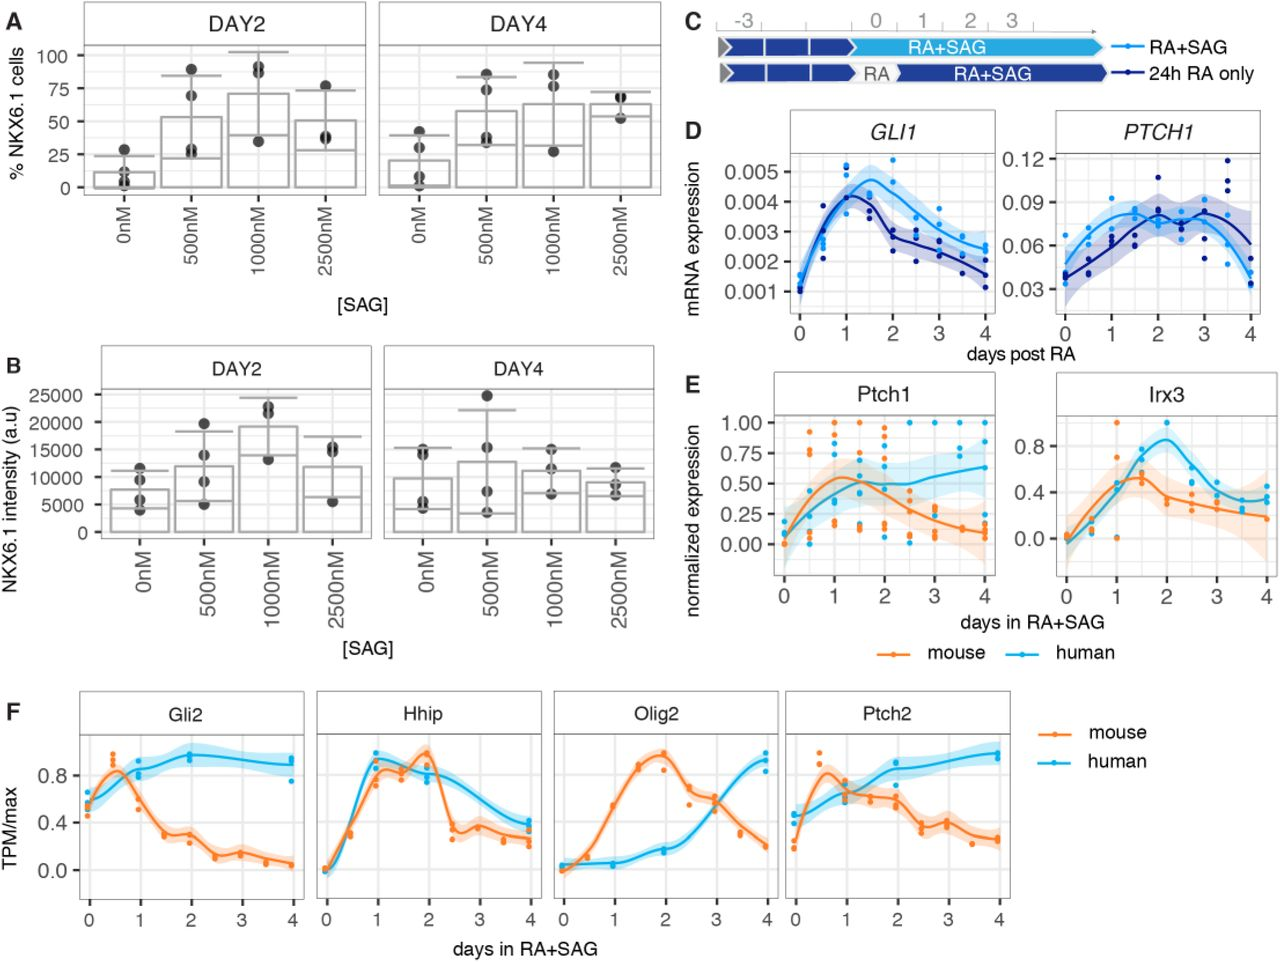 Dynamics of Shh at the time of induction in mouse and human neural progenitors. (A) Percentage of NKX6.1 measured by flow cytometry in SOX2-e×pressing cells at day 2 and day 4 after addition of SAG at increasing concentrations. (B) NKX6.1 mean intensity level from the same samples with increasing concentrations of SAG are comparable at day 2 and day 4. (C) Scheme outlining the standard differentiation protocol where RA and SAG are added at the same time (light blue), versus a treatment where SAG addition is delayed for 24h (dark blue). (D) RT-qPCR data reveals no substantial differences in the induction dynamics of Gli1, Ptchi from the moment of addition of SAG. (E) RT-qPCR data measured in 12h intervals reveals similar gene expression dynamics in mouse (orange) and human (blue) Ptchi and distinct Irx3 expression. (F) Normalized expression of other Hedghog target genes from the RNAseq. (Transcripts per million (TPM)).